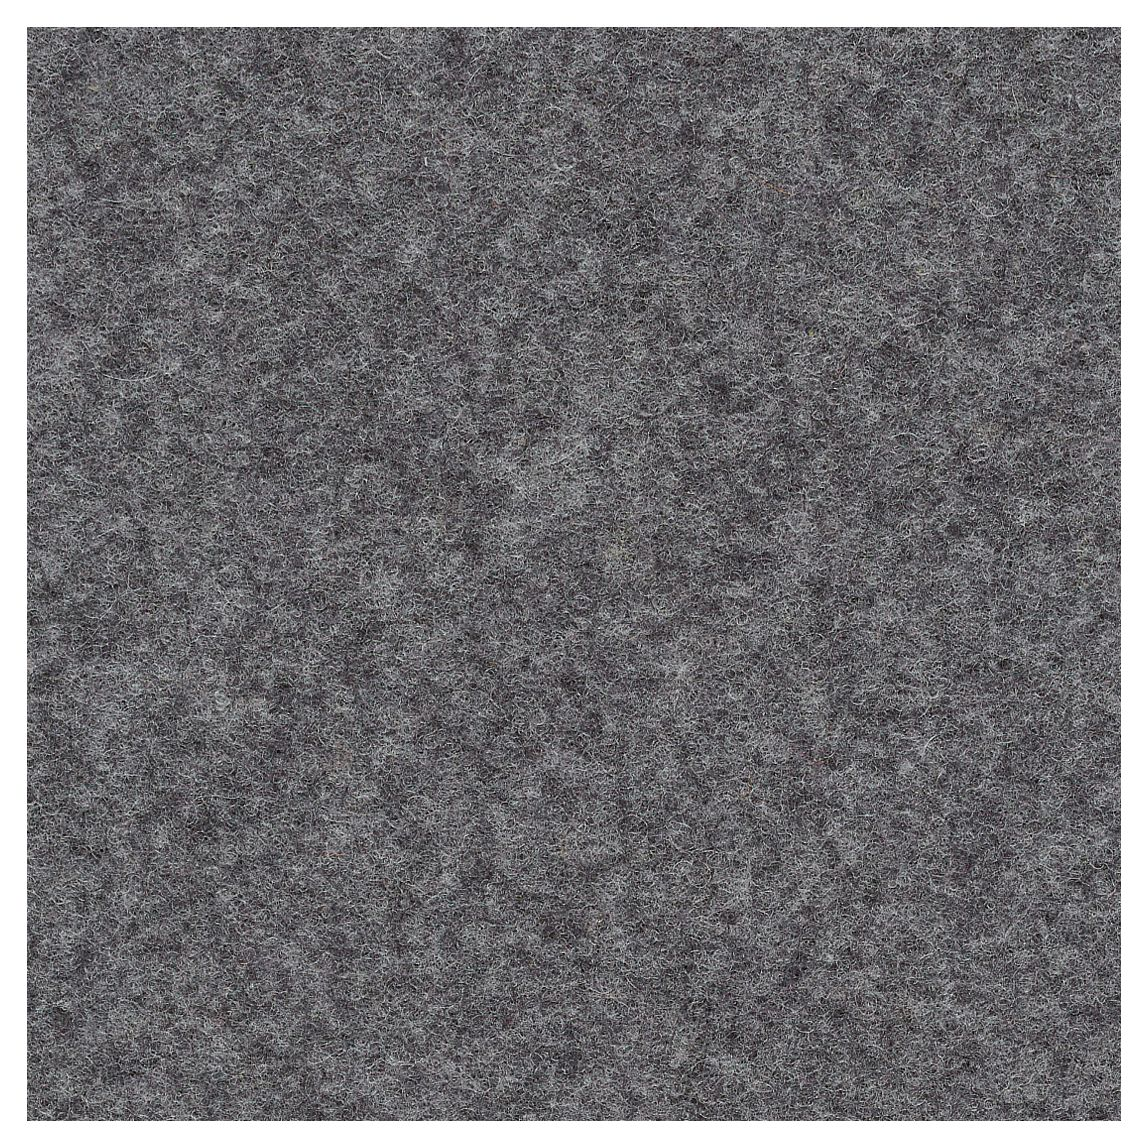 Wooly Grey Flannel Swatch